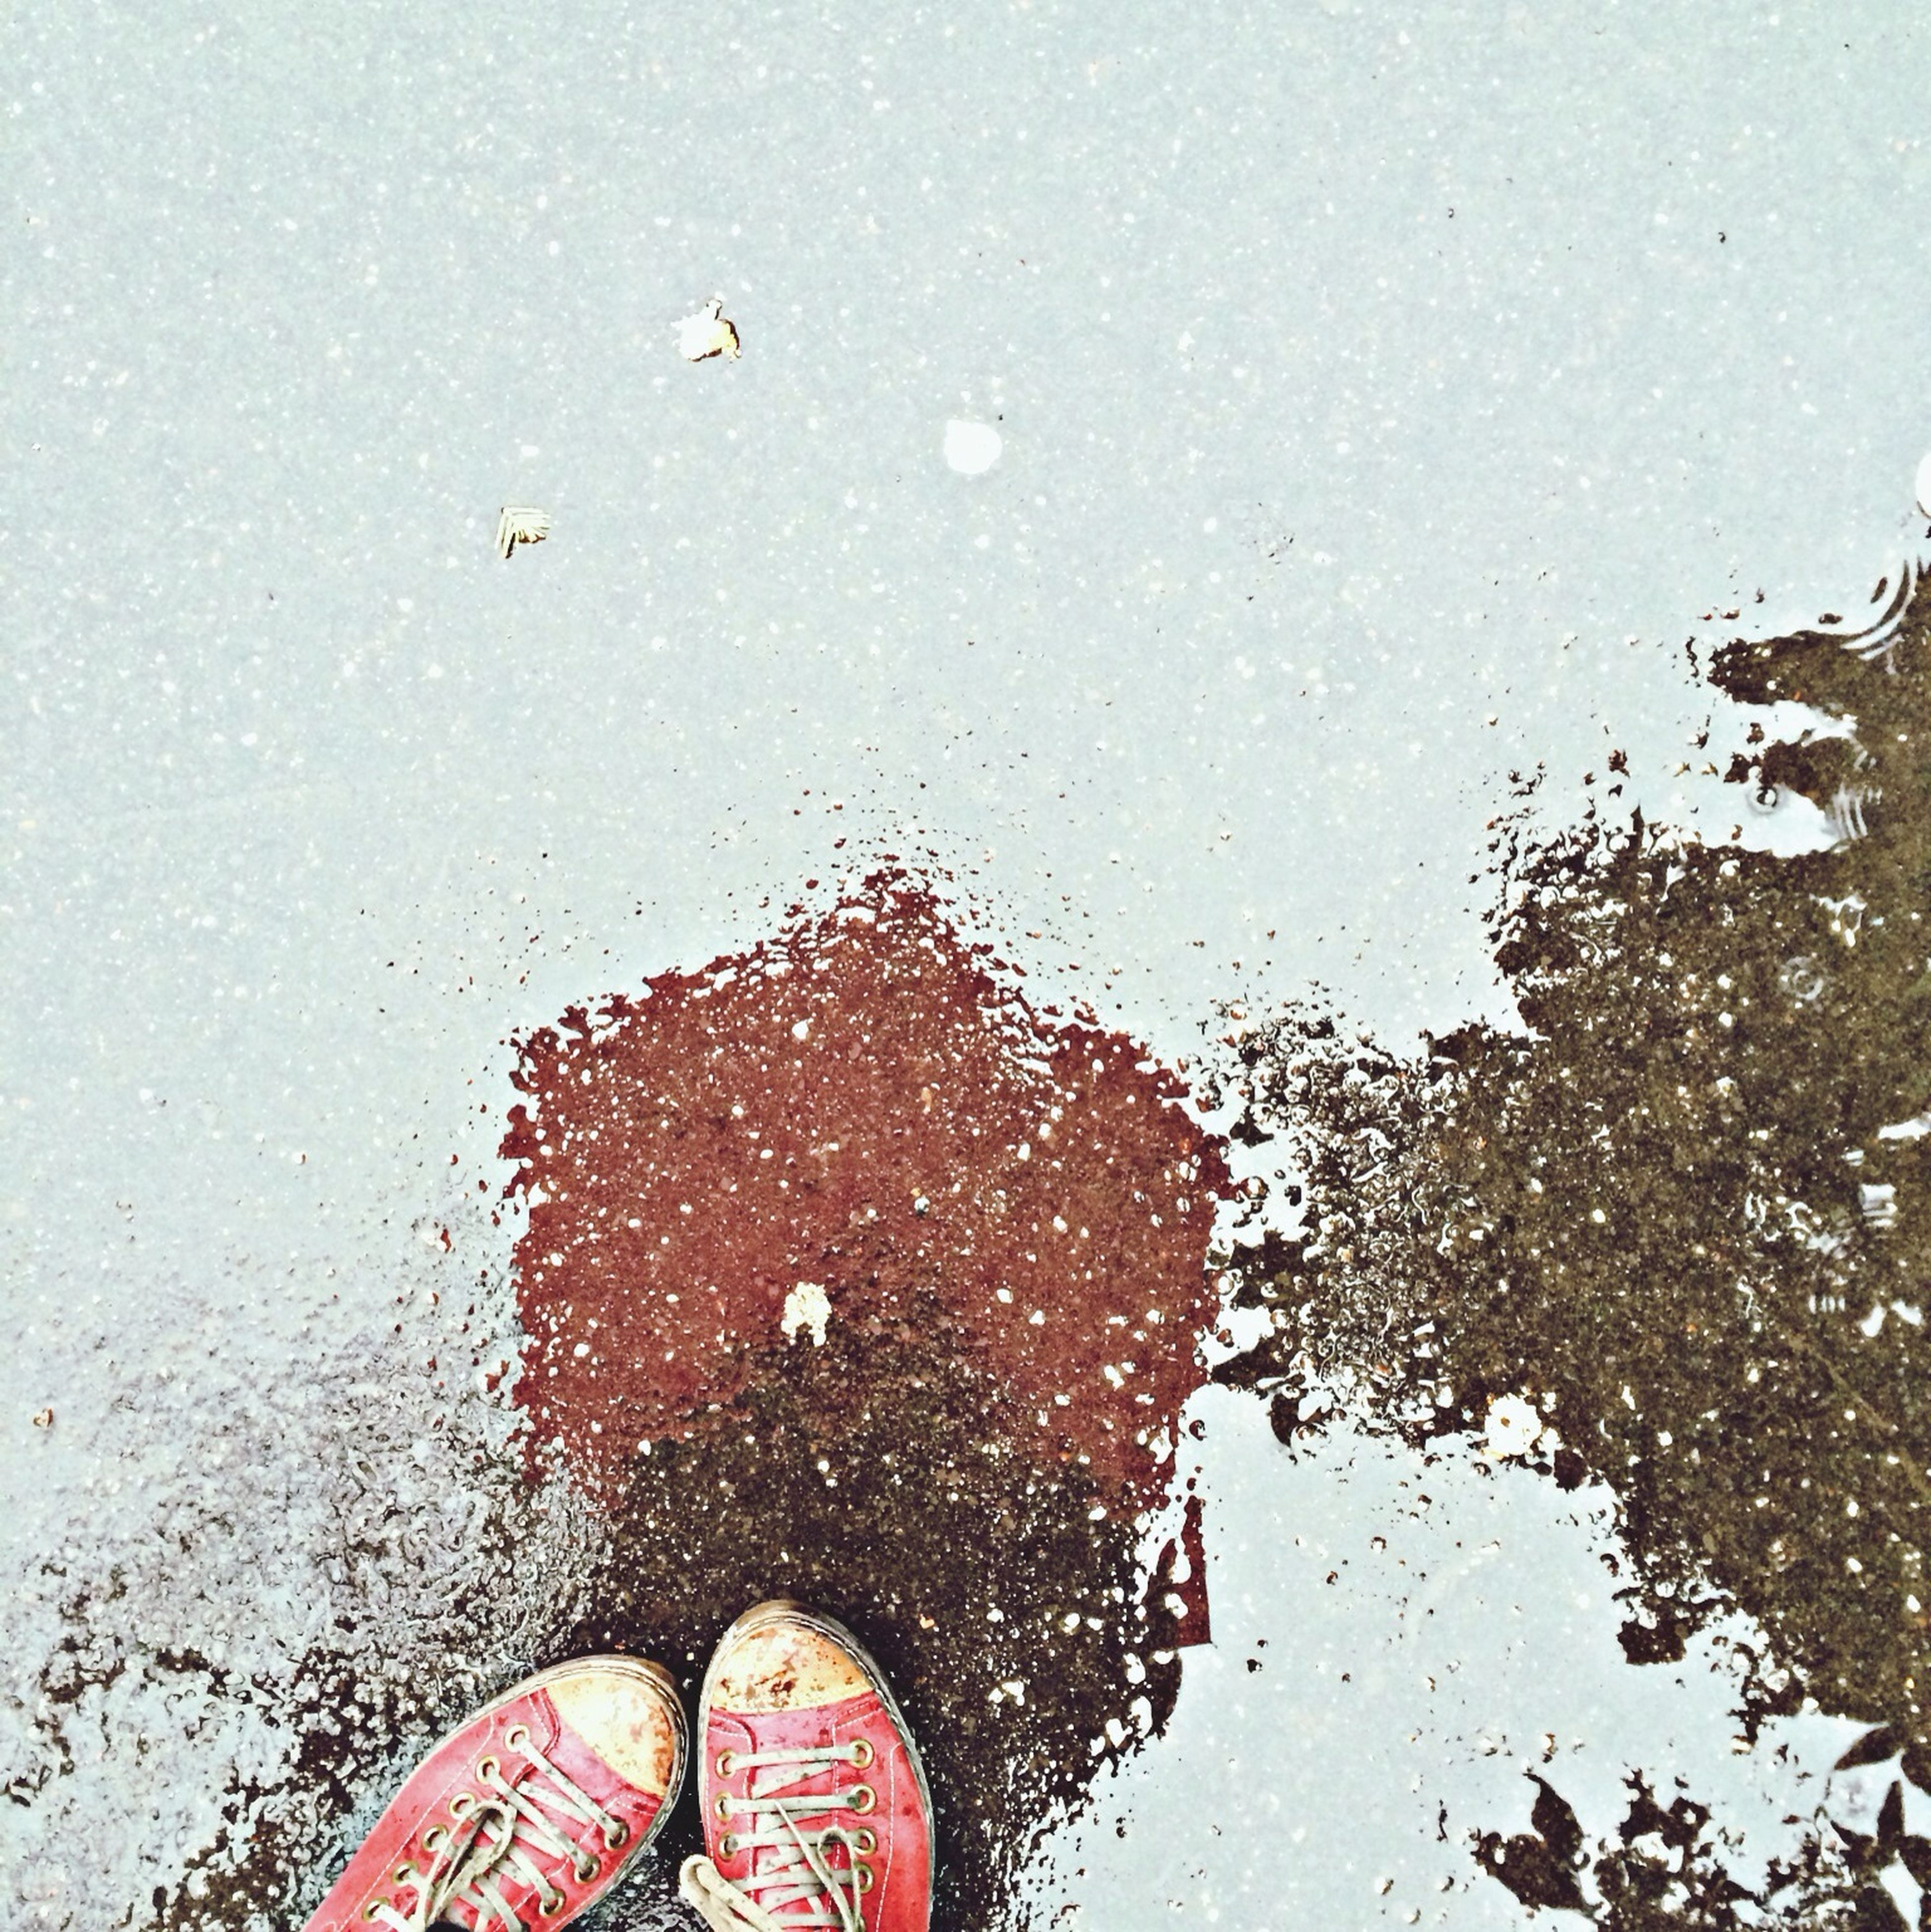 water, personal perspective, person, low section, shoe, wet, high angle view, lifestyles, human foot, leisure activity, puddle, unrecognizable person, reflection, standing, part of, transparent, footwear